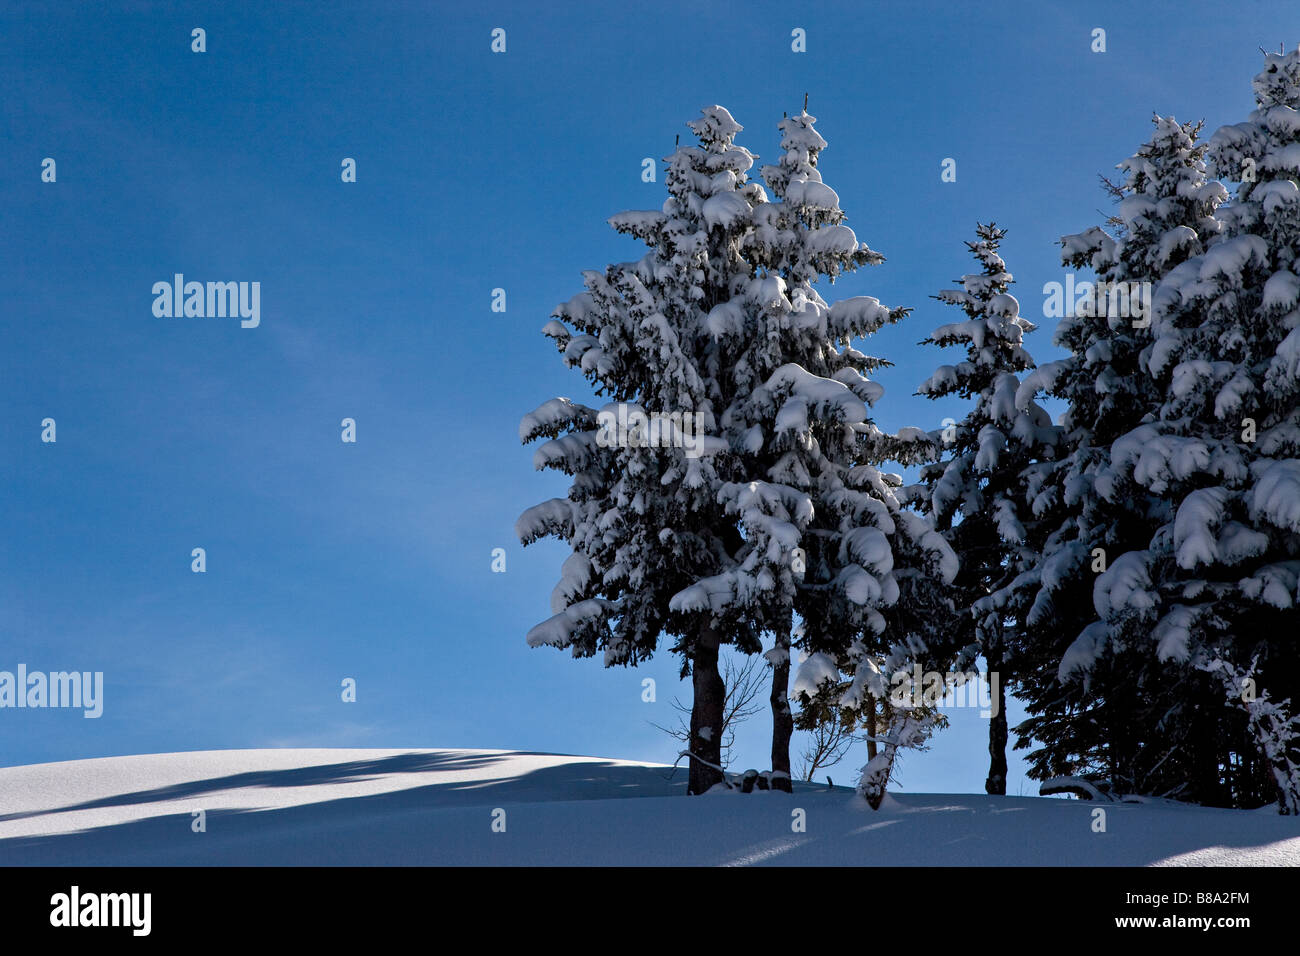 Snow covered tres on ski slope with vivid blue sky - Stock Image